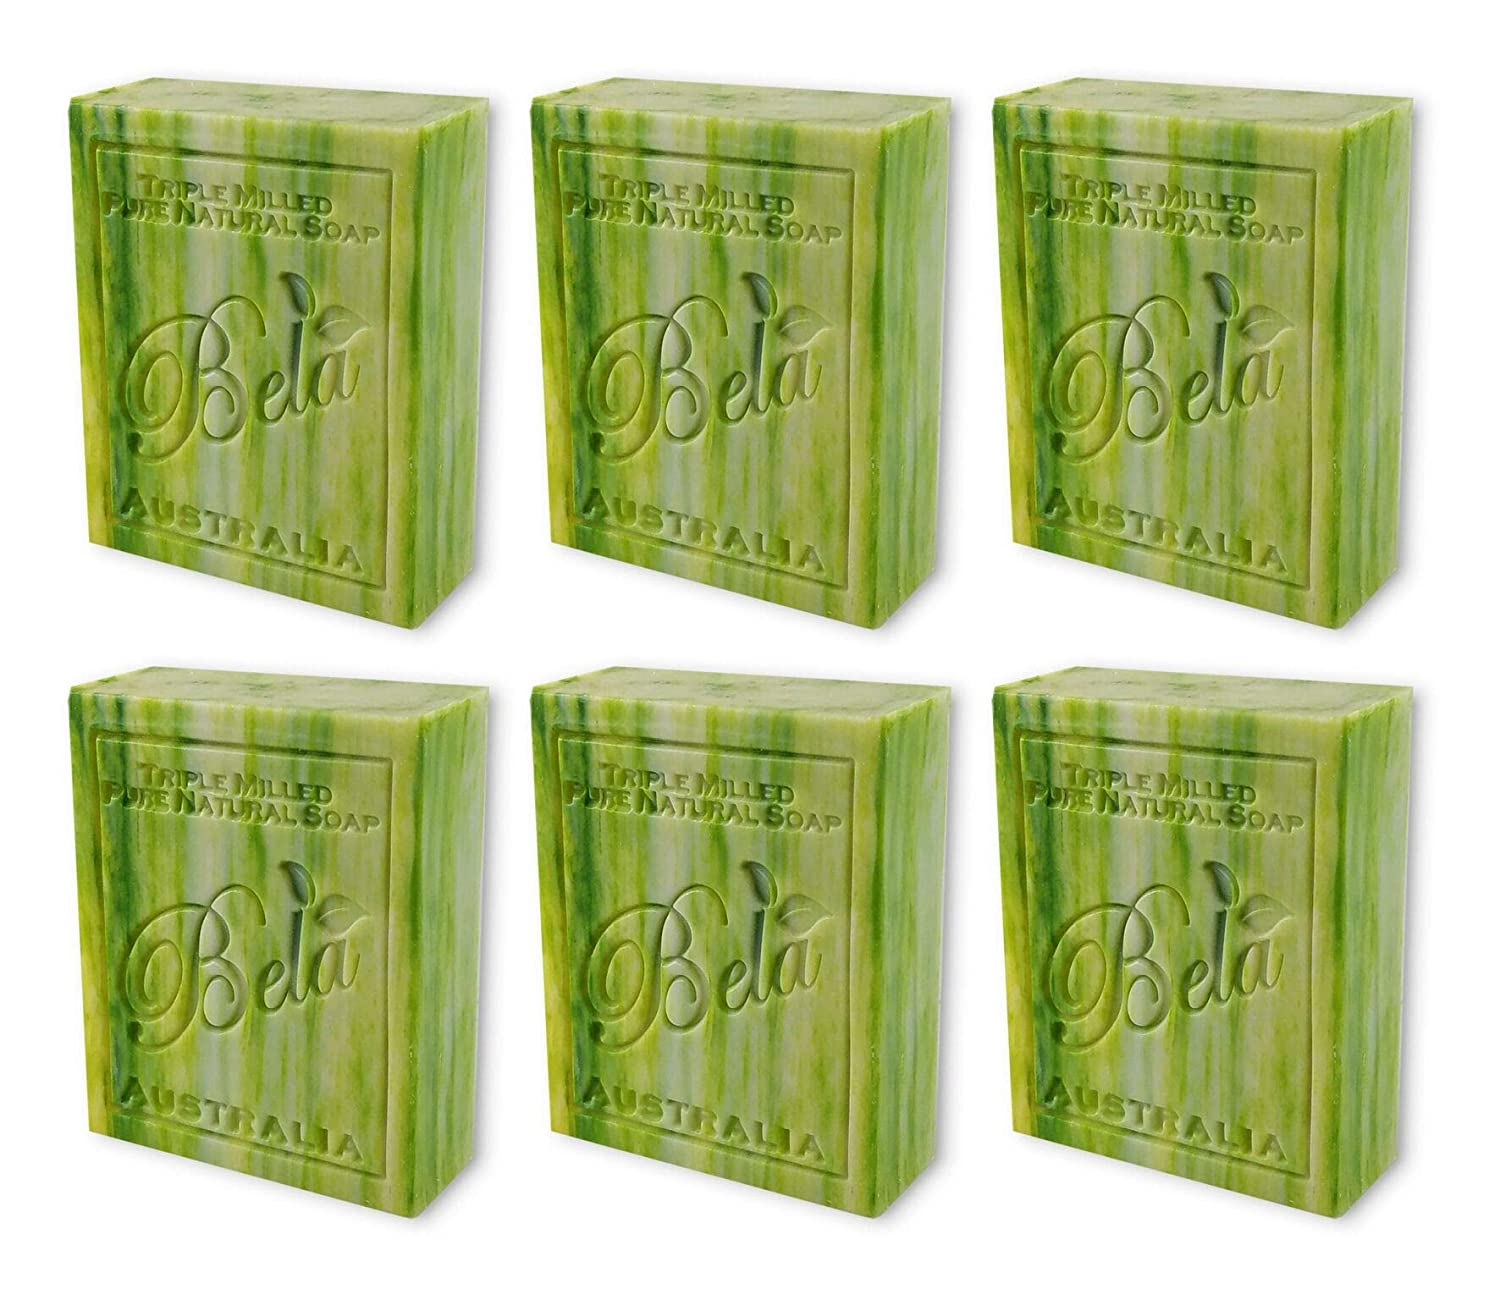 Bela Bath Deluxe Beauty Mail order Olive Oil with M Triple Milled Butter Cocoa